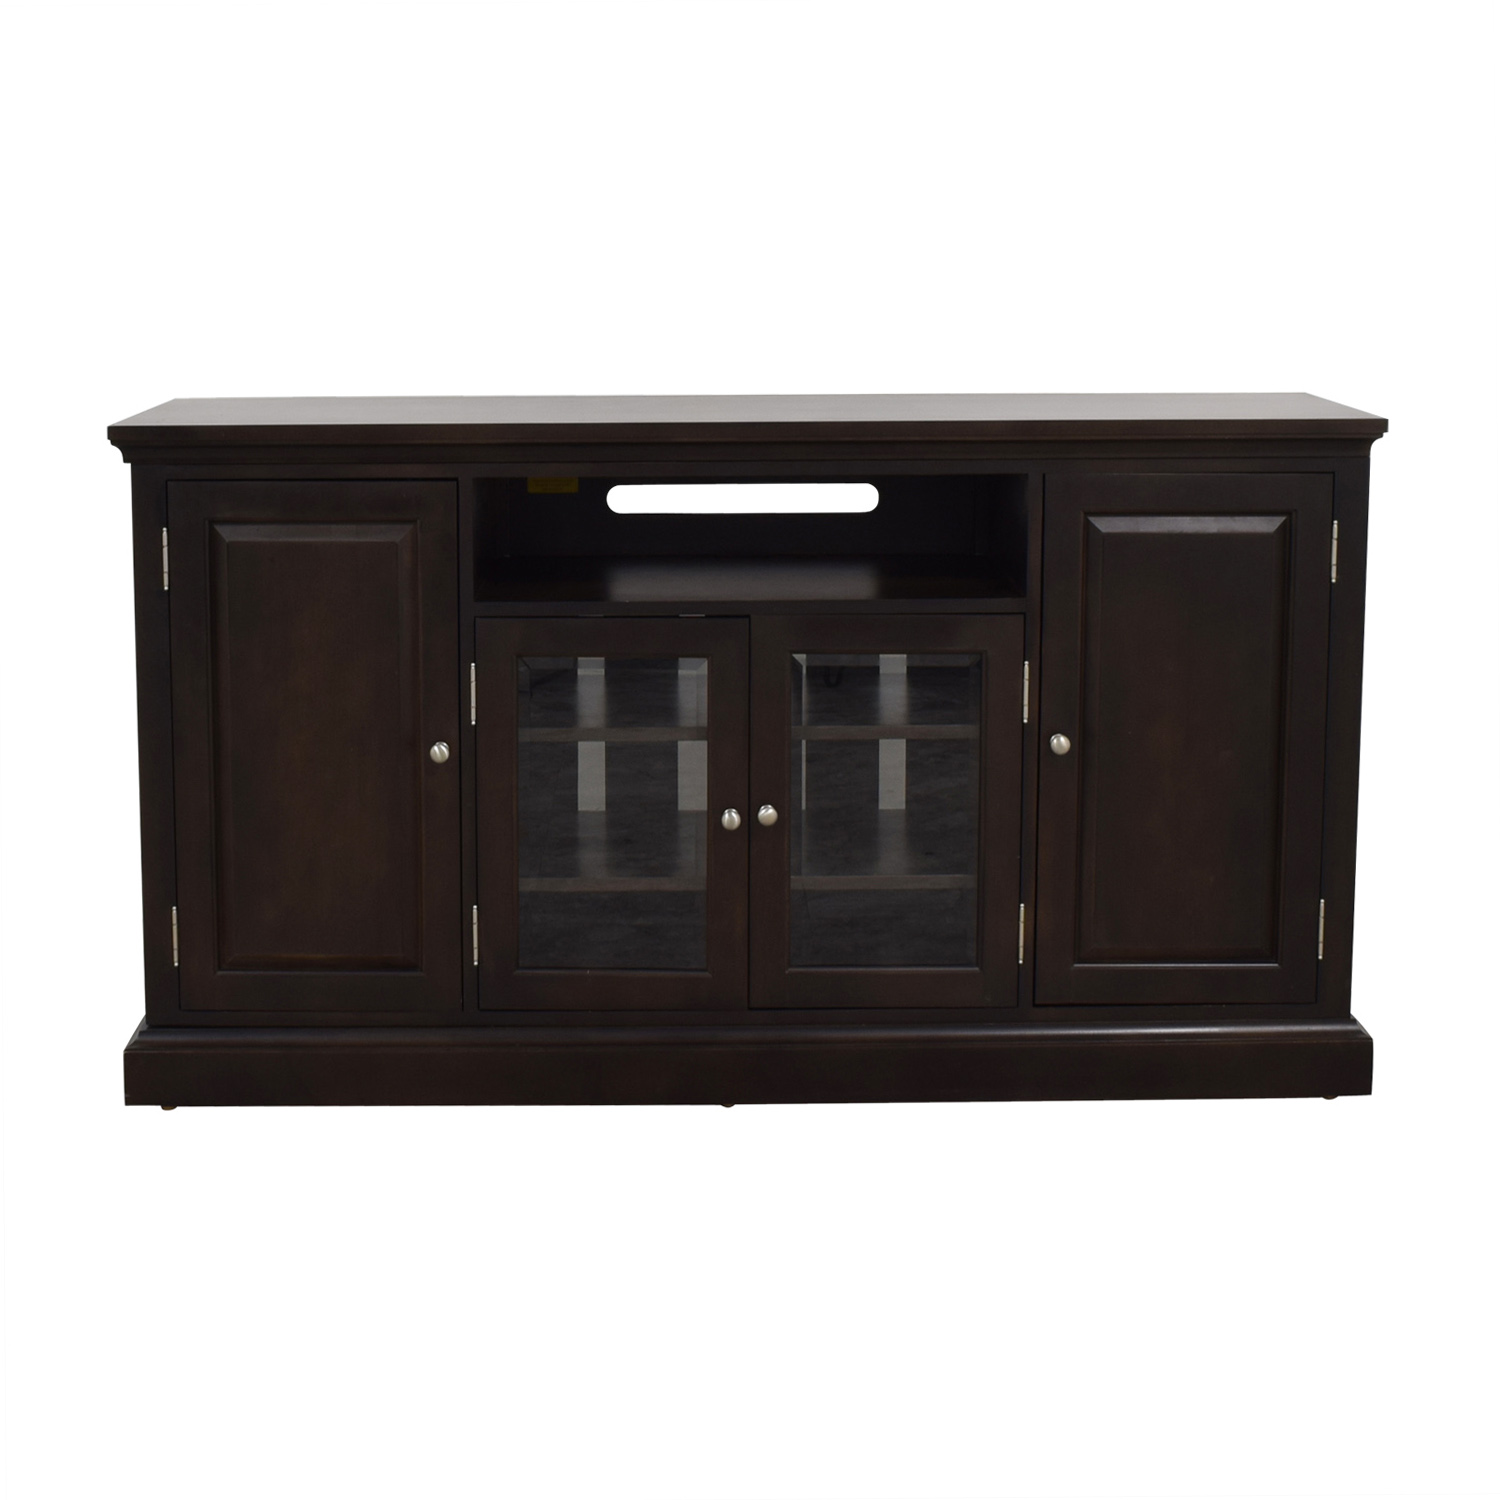 Ethan Allen Ethan Allen Wood and Glass Media Cabinet dimensions